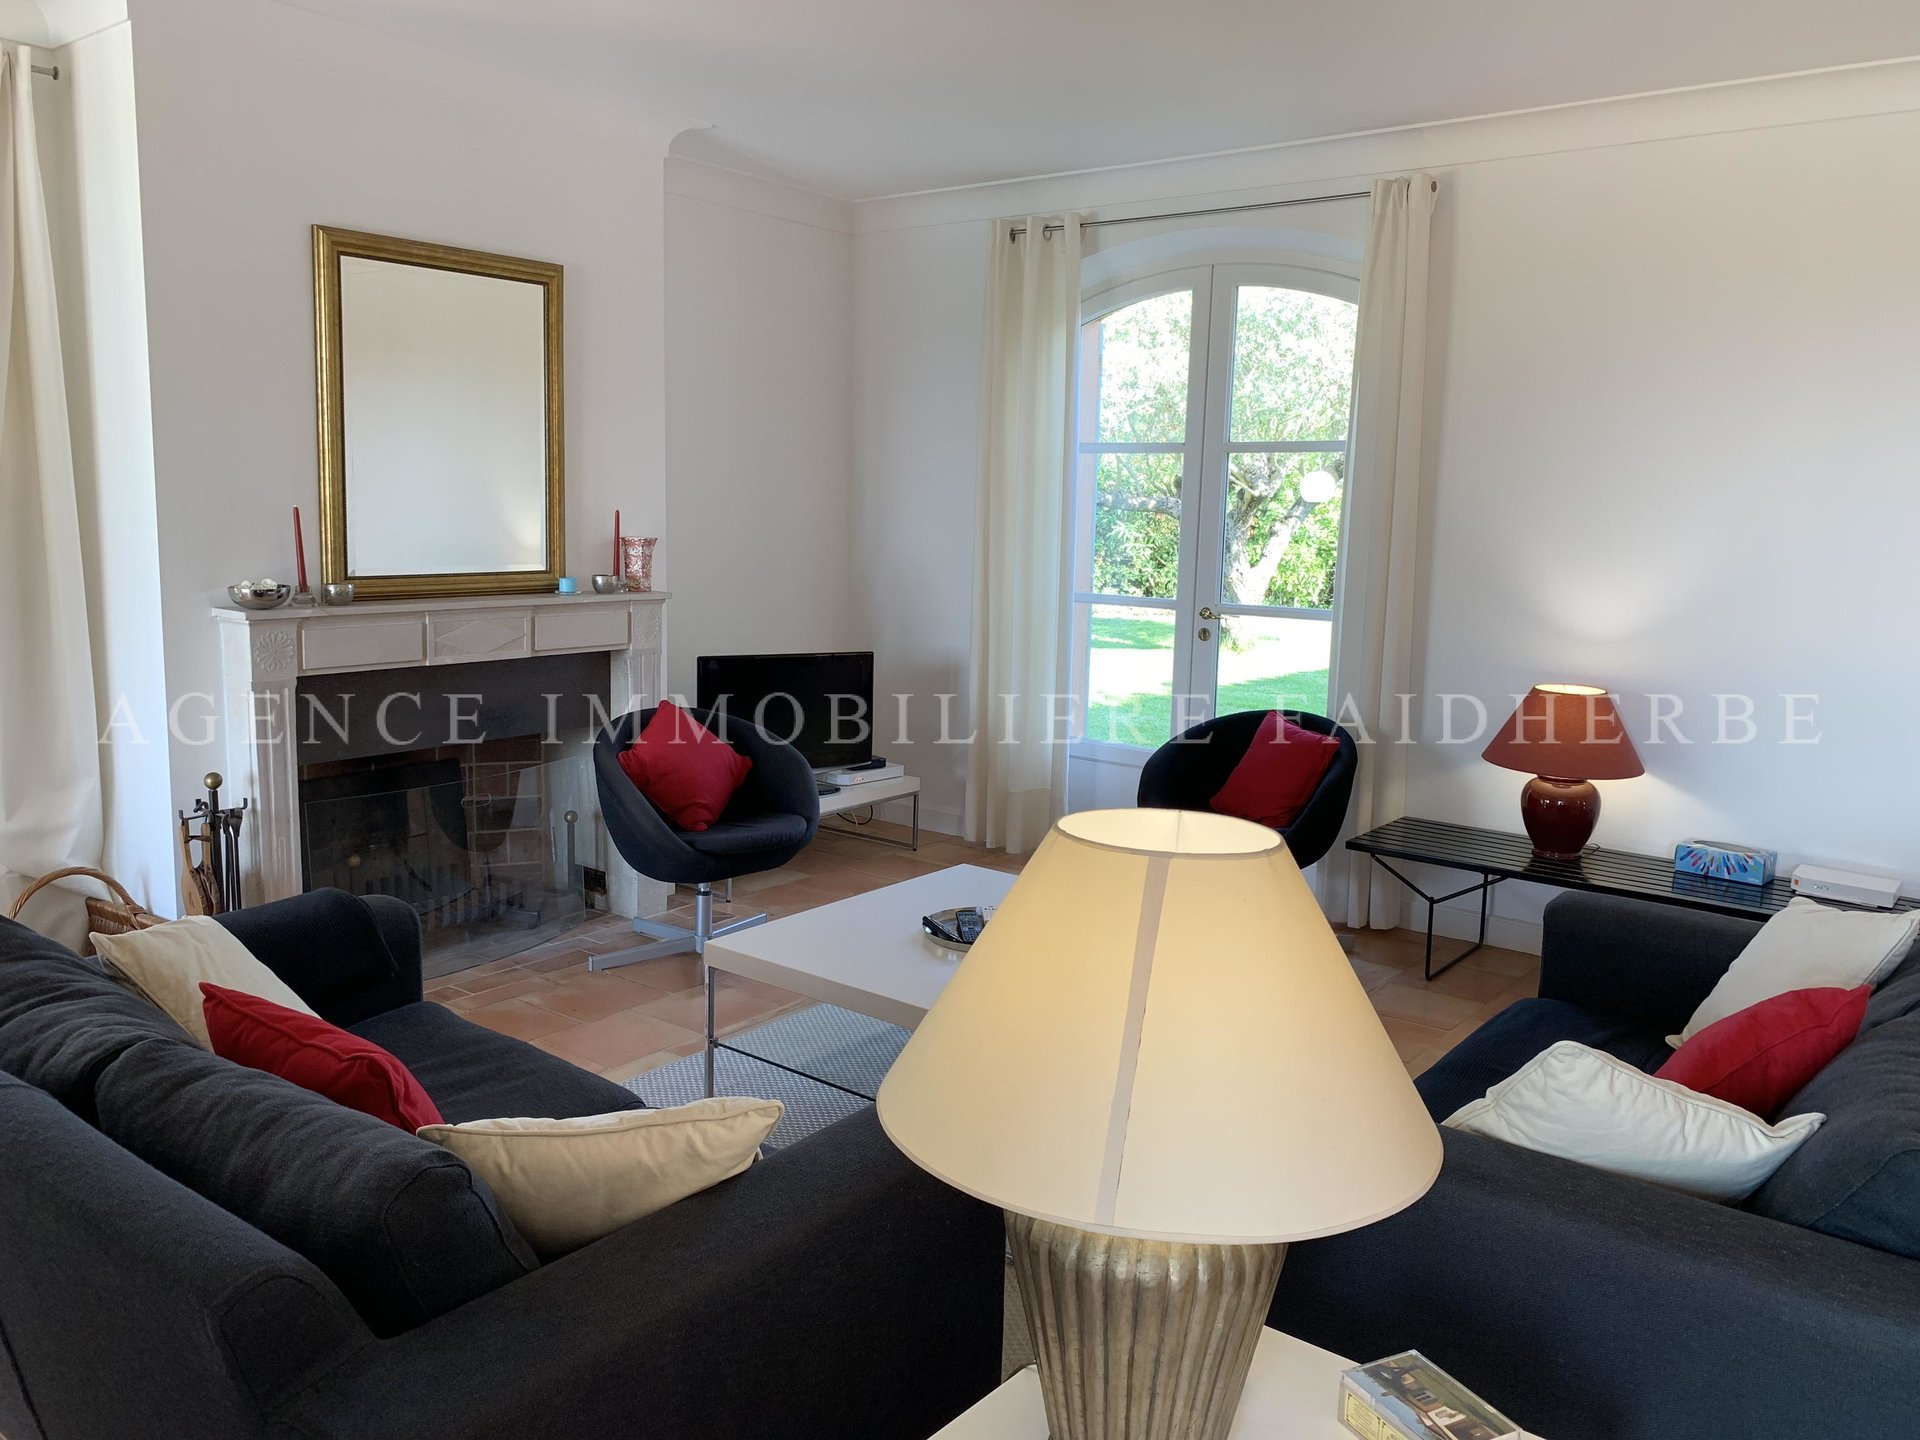 Area : Canoubiers, villa with pool with